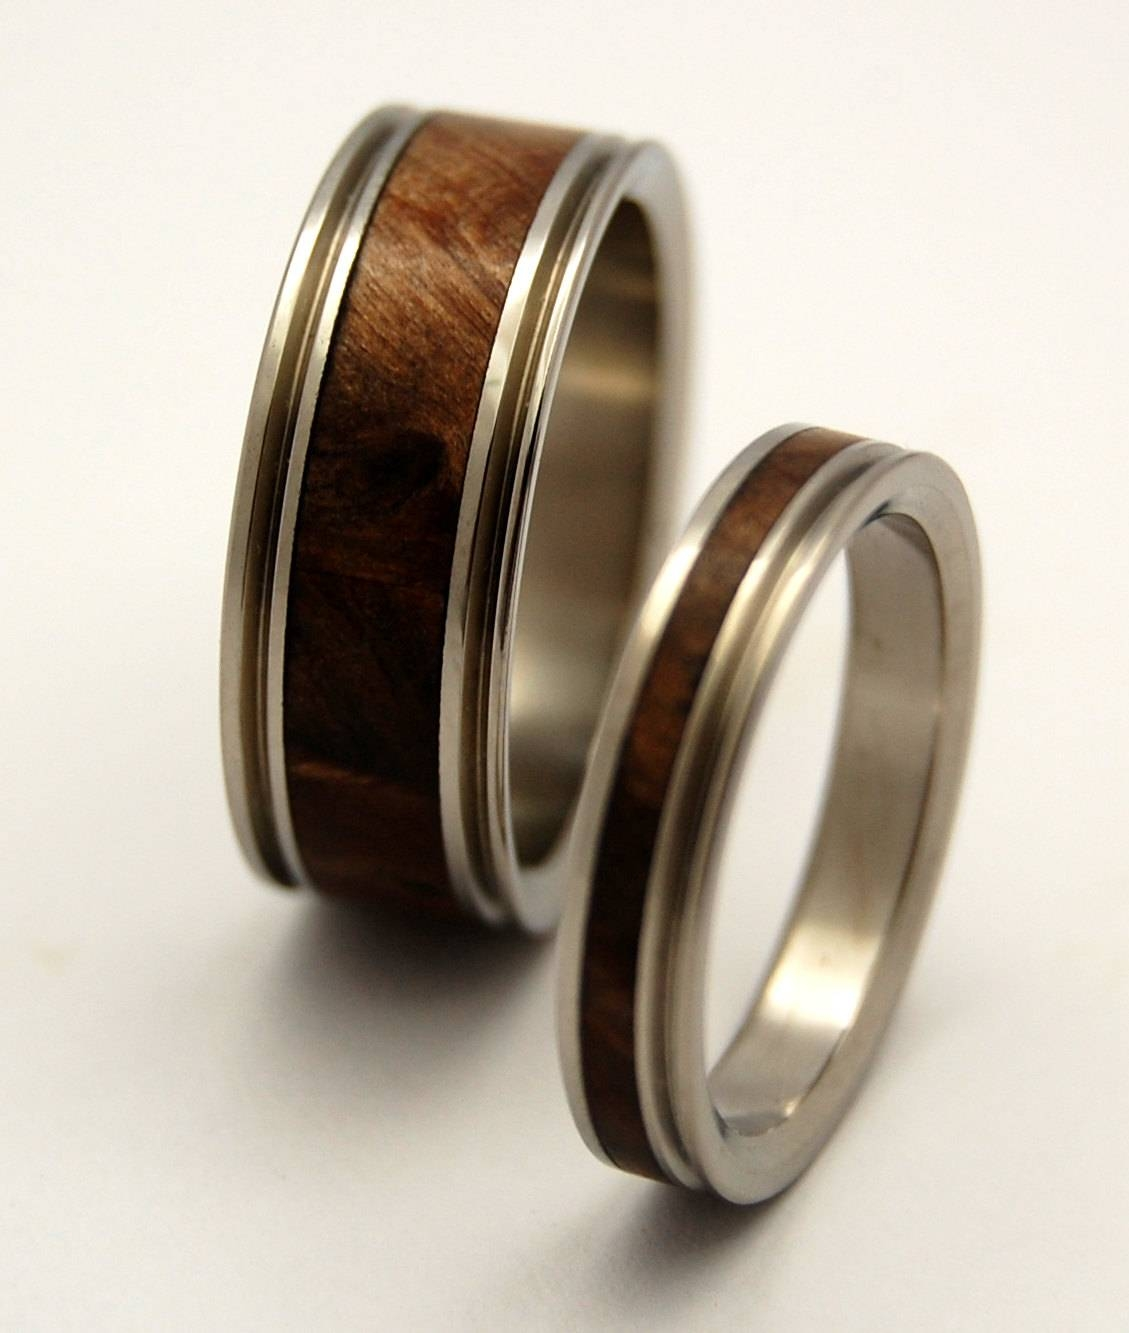 wooden wedding rings titanium ring titanium wedding rings in mens wooden wedding bands view 15 - Mens Wooden Wedding Rings